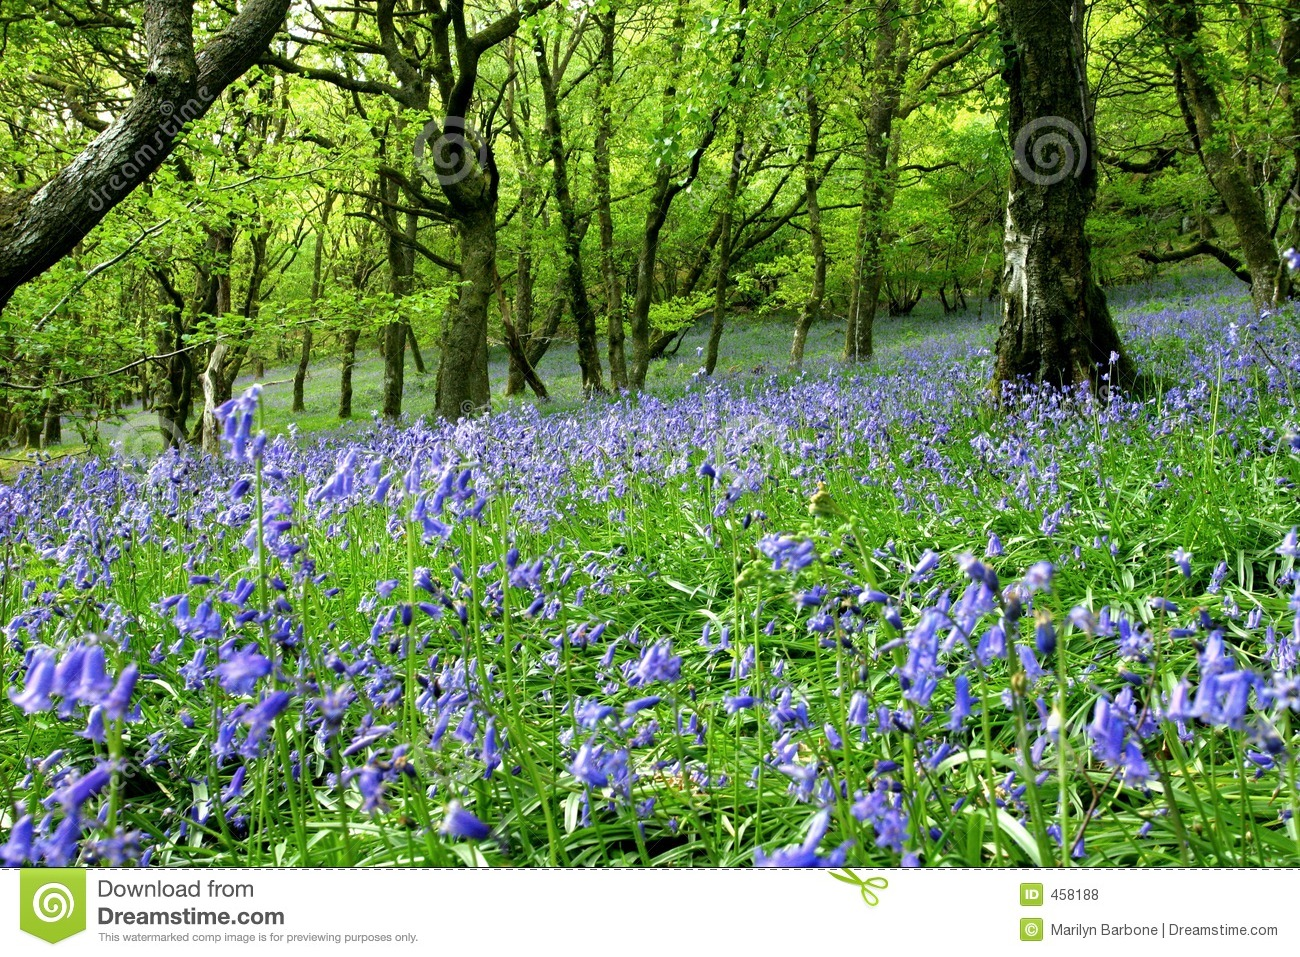 Bluebell-Fantasie-Land